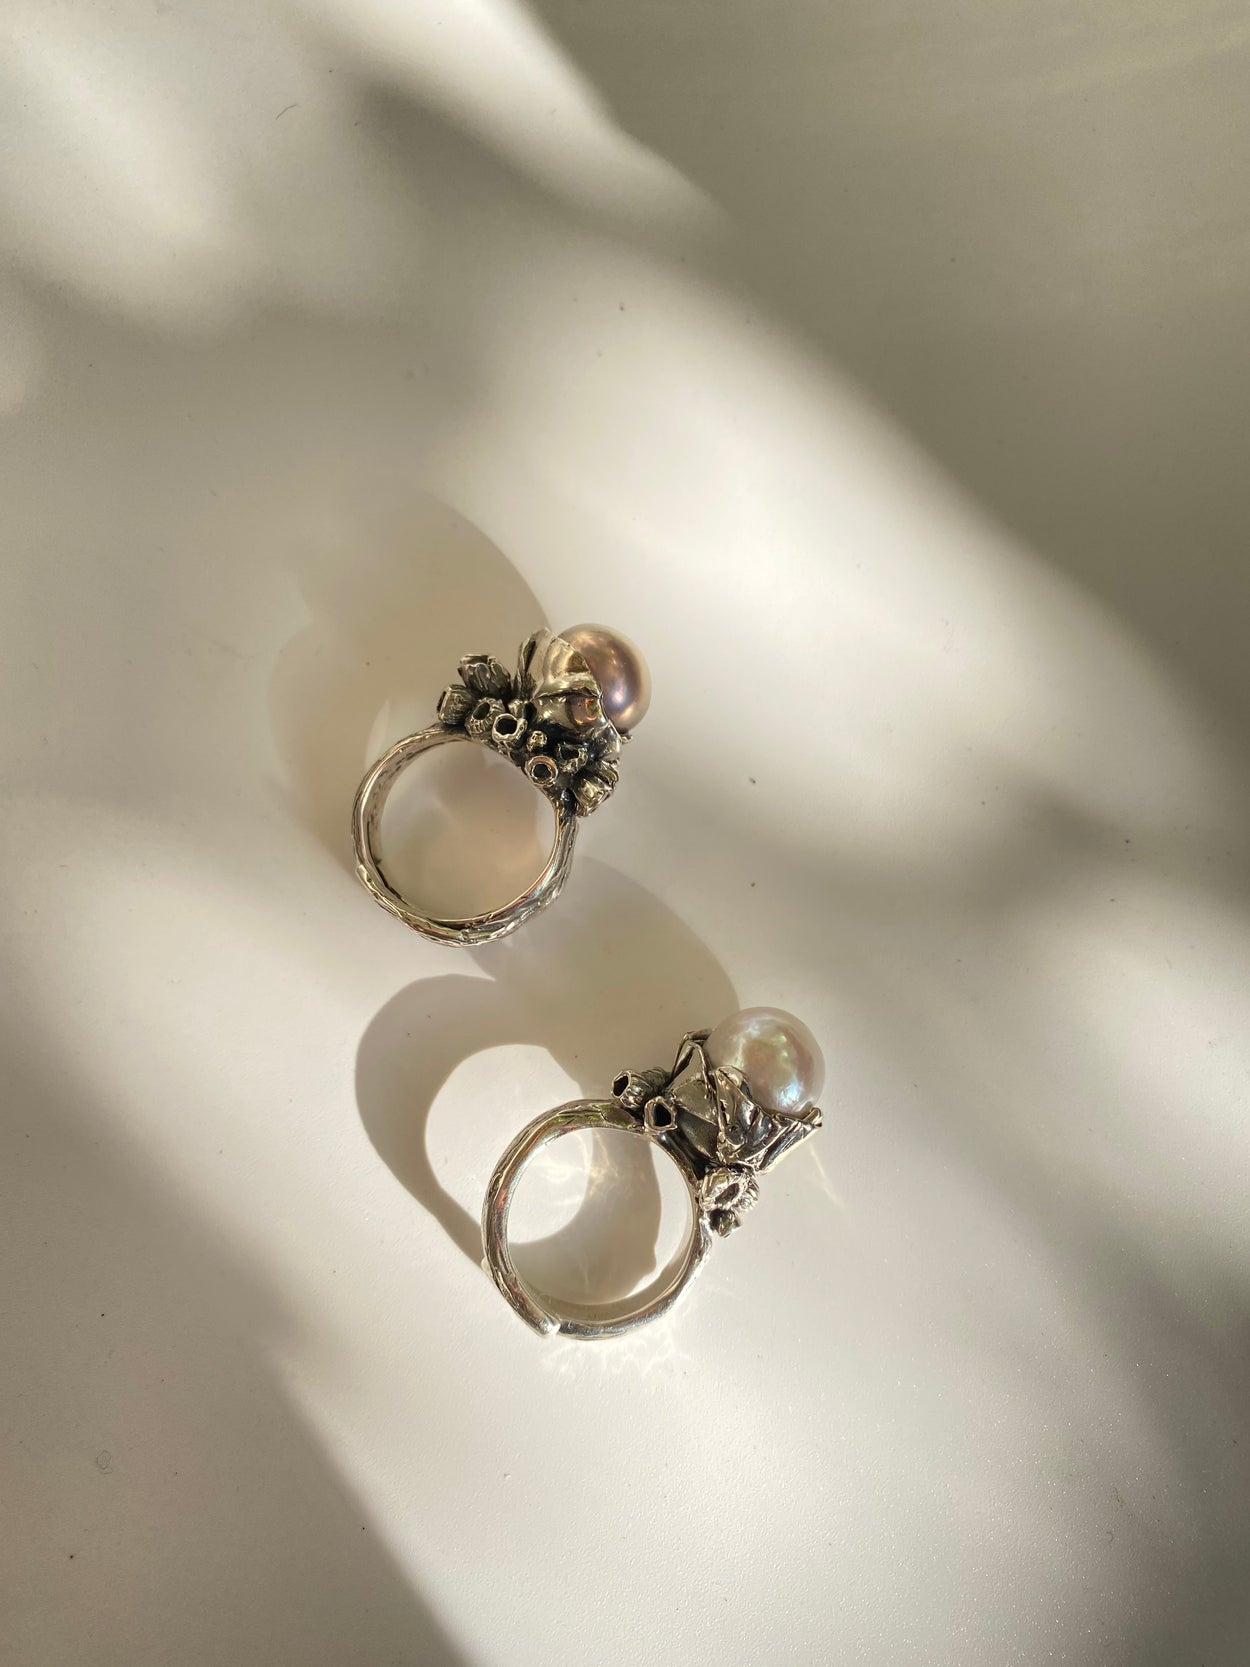 The Encrusted Pearl Ring